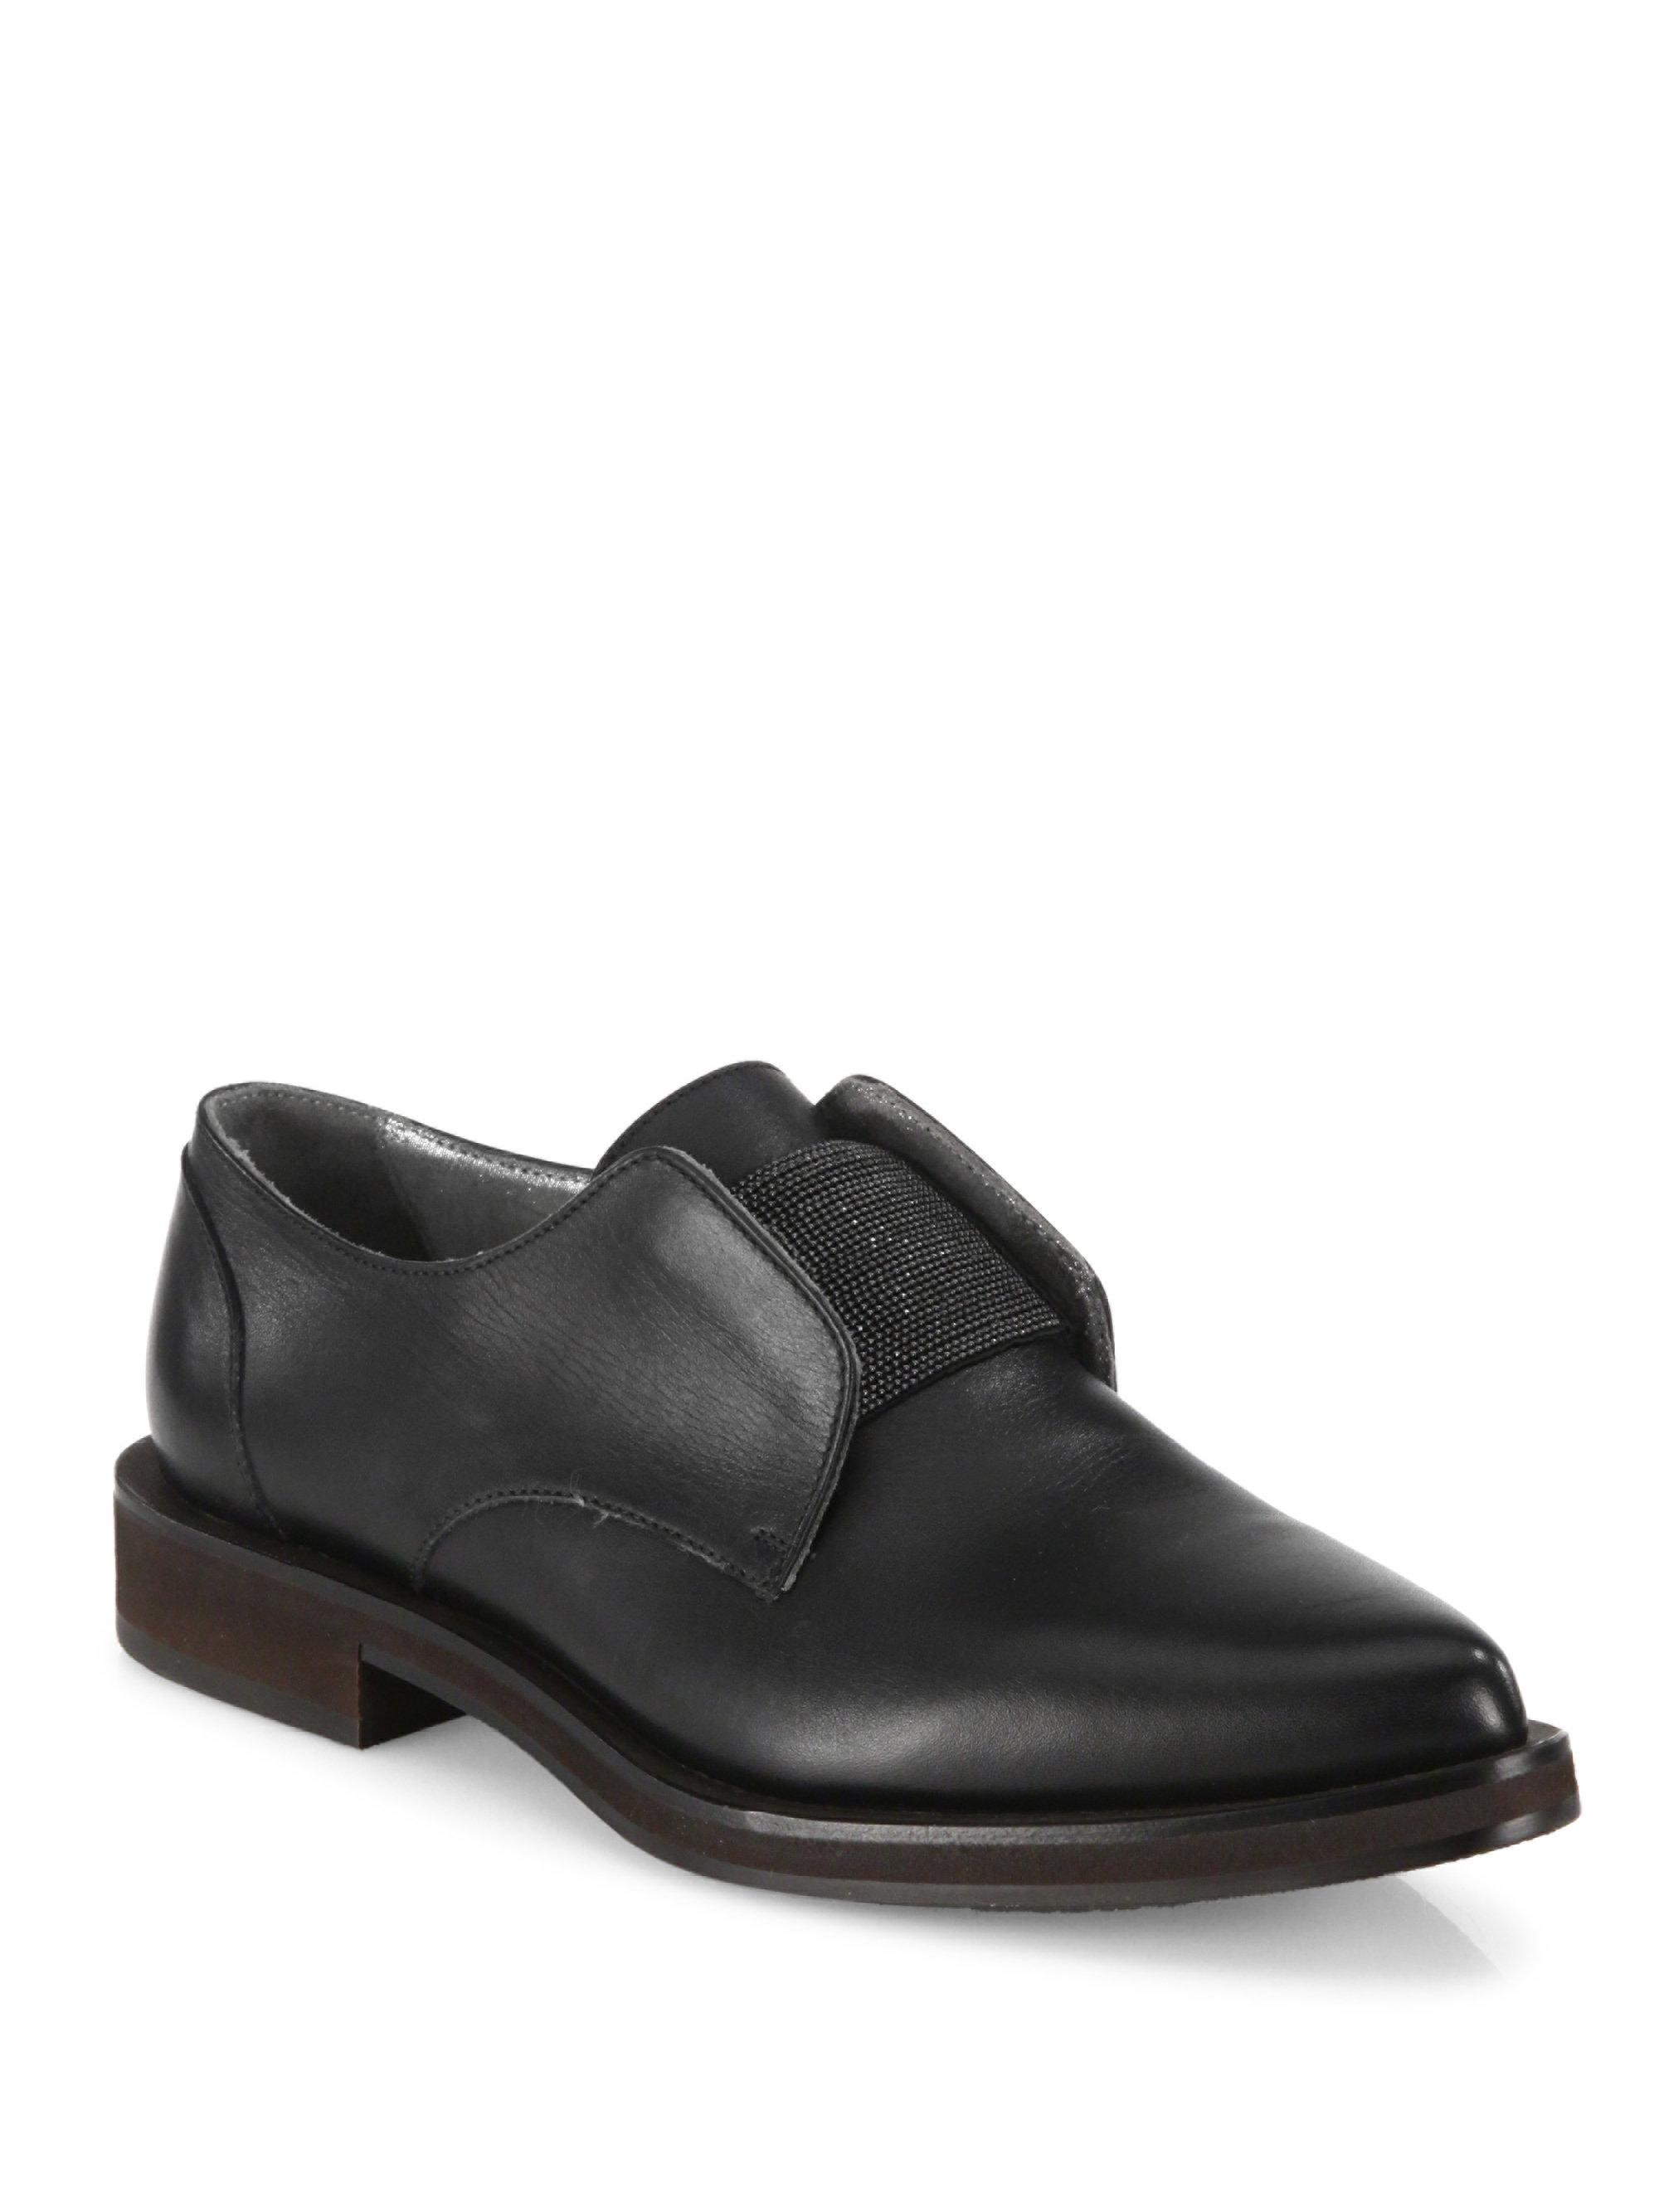 Brunello Cucinelli Patent Leather Round-Toe Loafers buy cheap shop offer fake cheap price Yp6ciSO